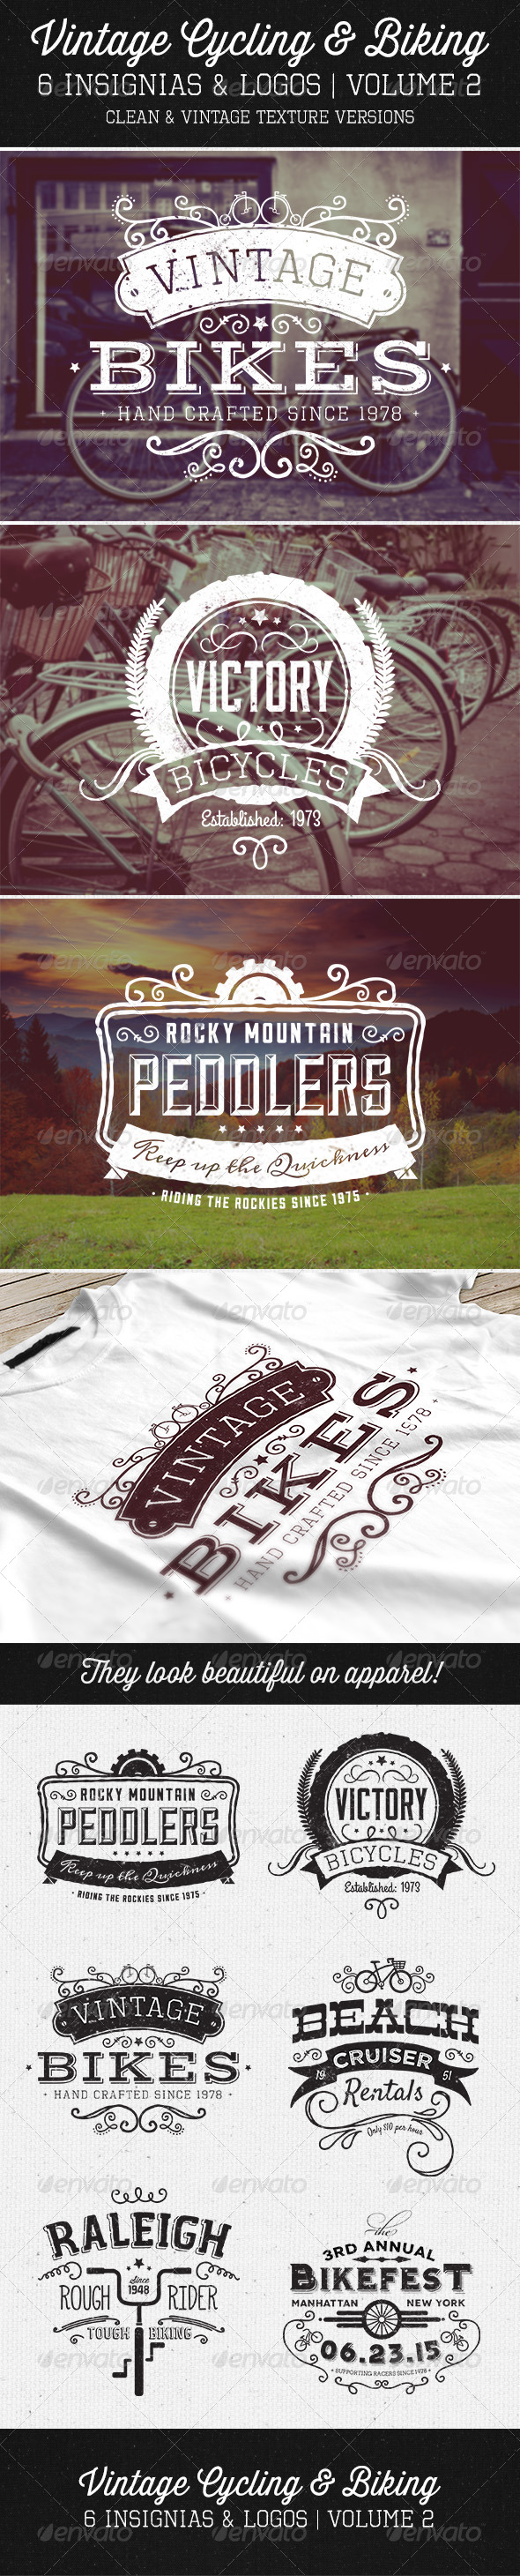 GraphicRiver Vintage Cycling Insignias Vol 2 6053652